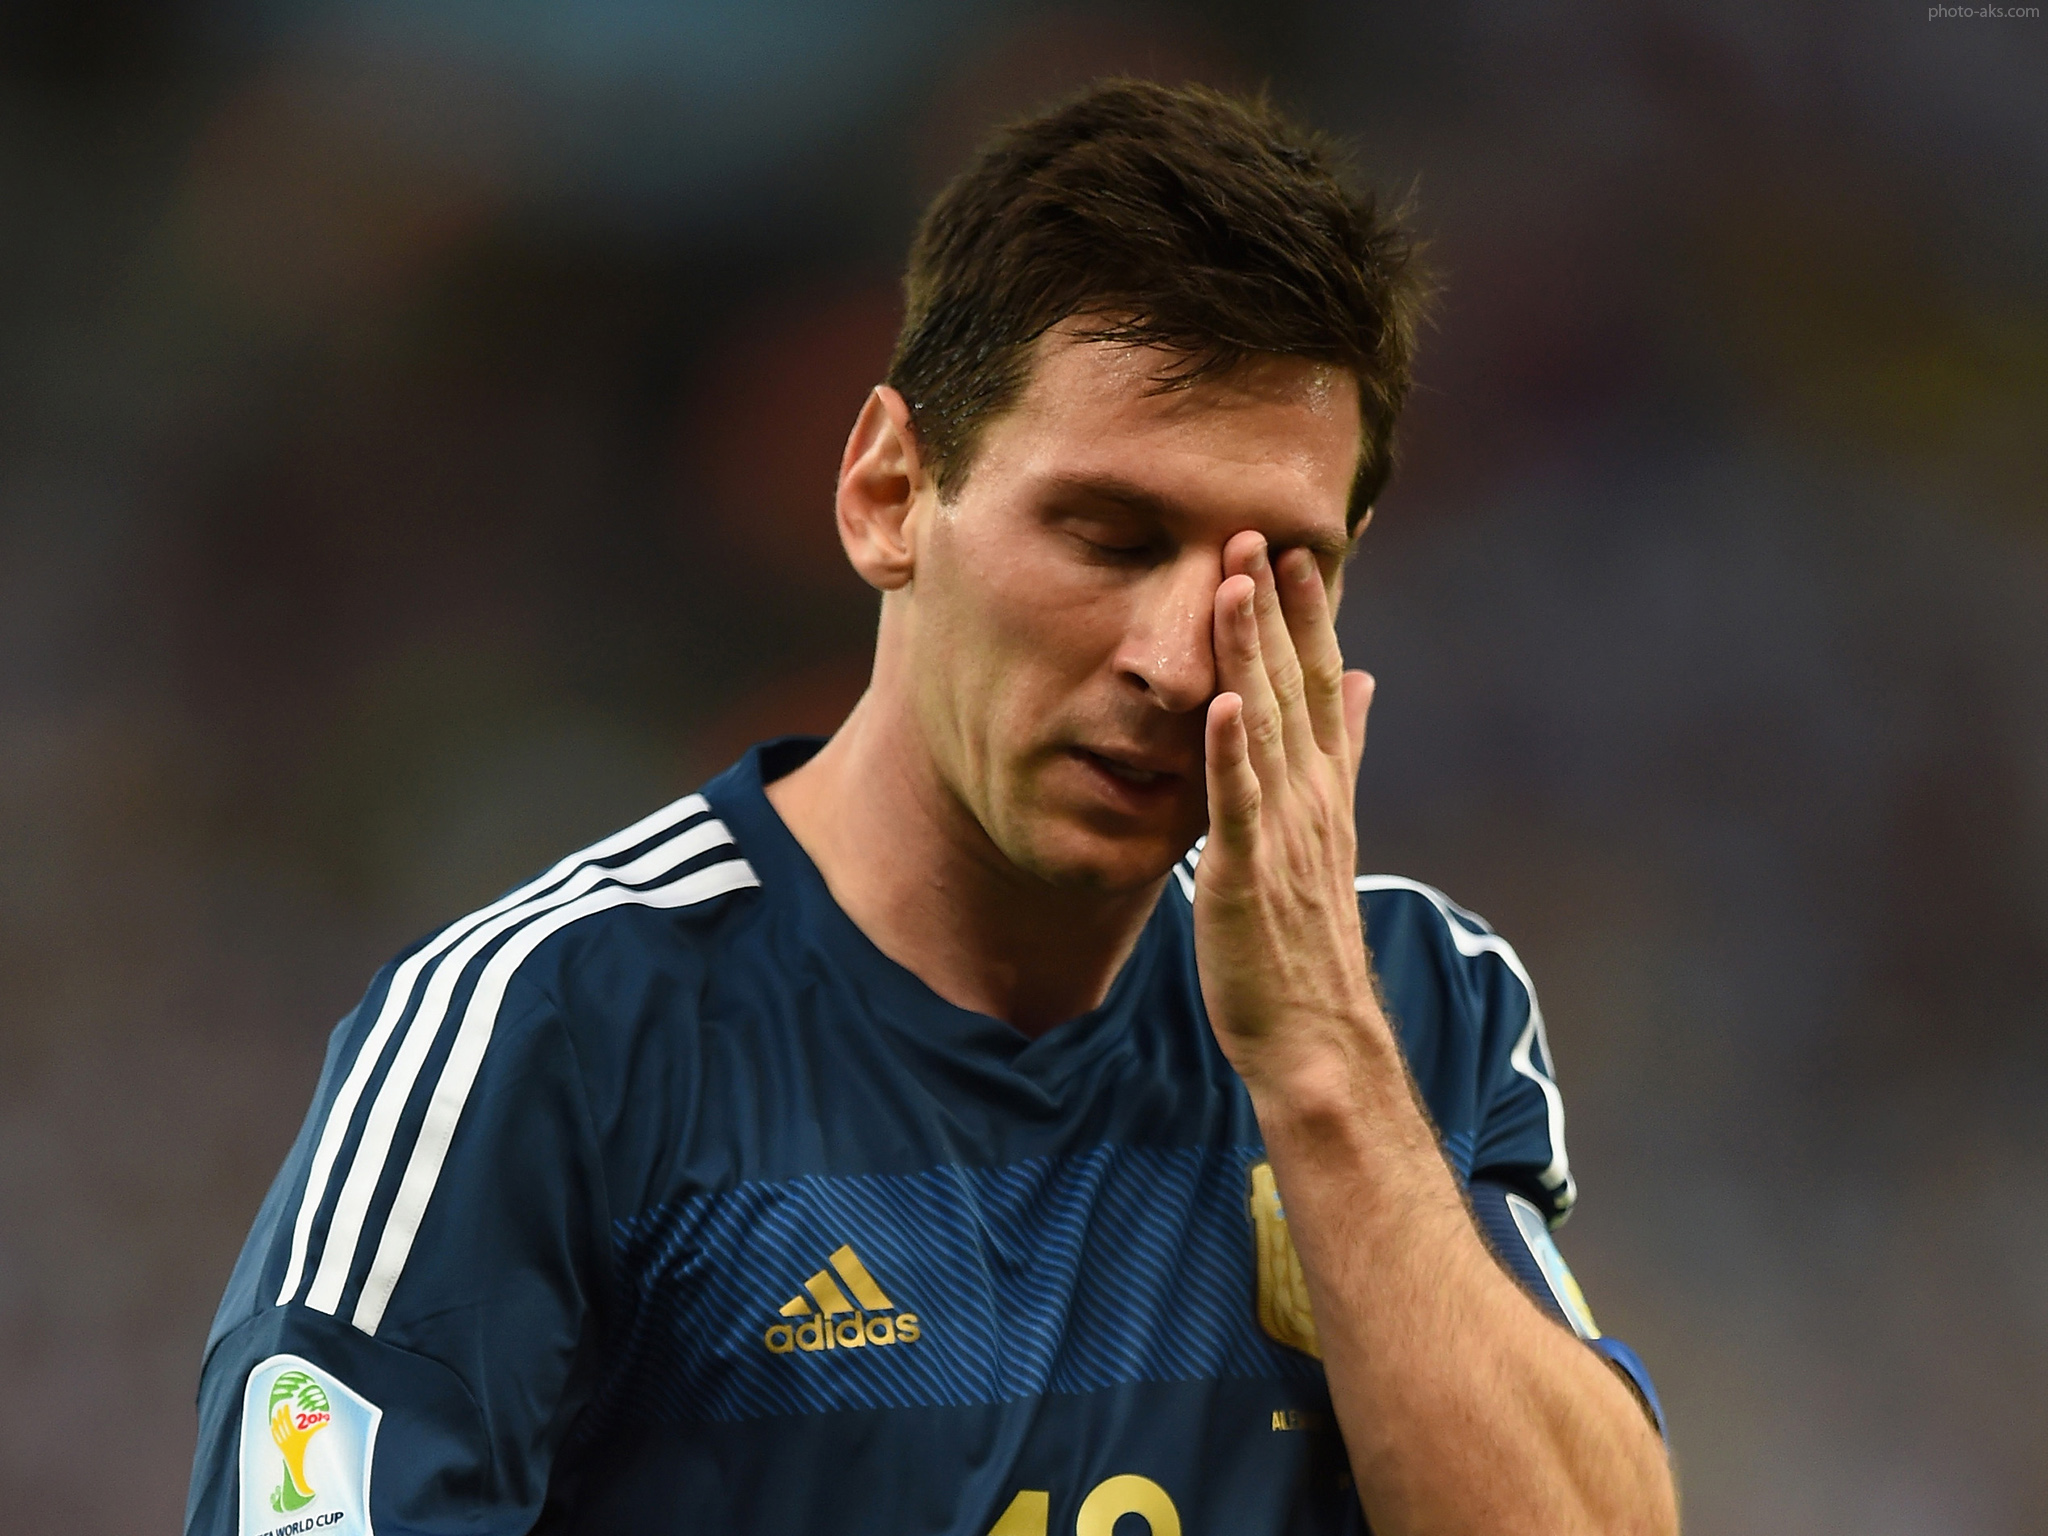 http://pic.photo-aks.com/photo/sports/football/foreign-players/large/messi_final_2014_world_cup.jpg